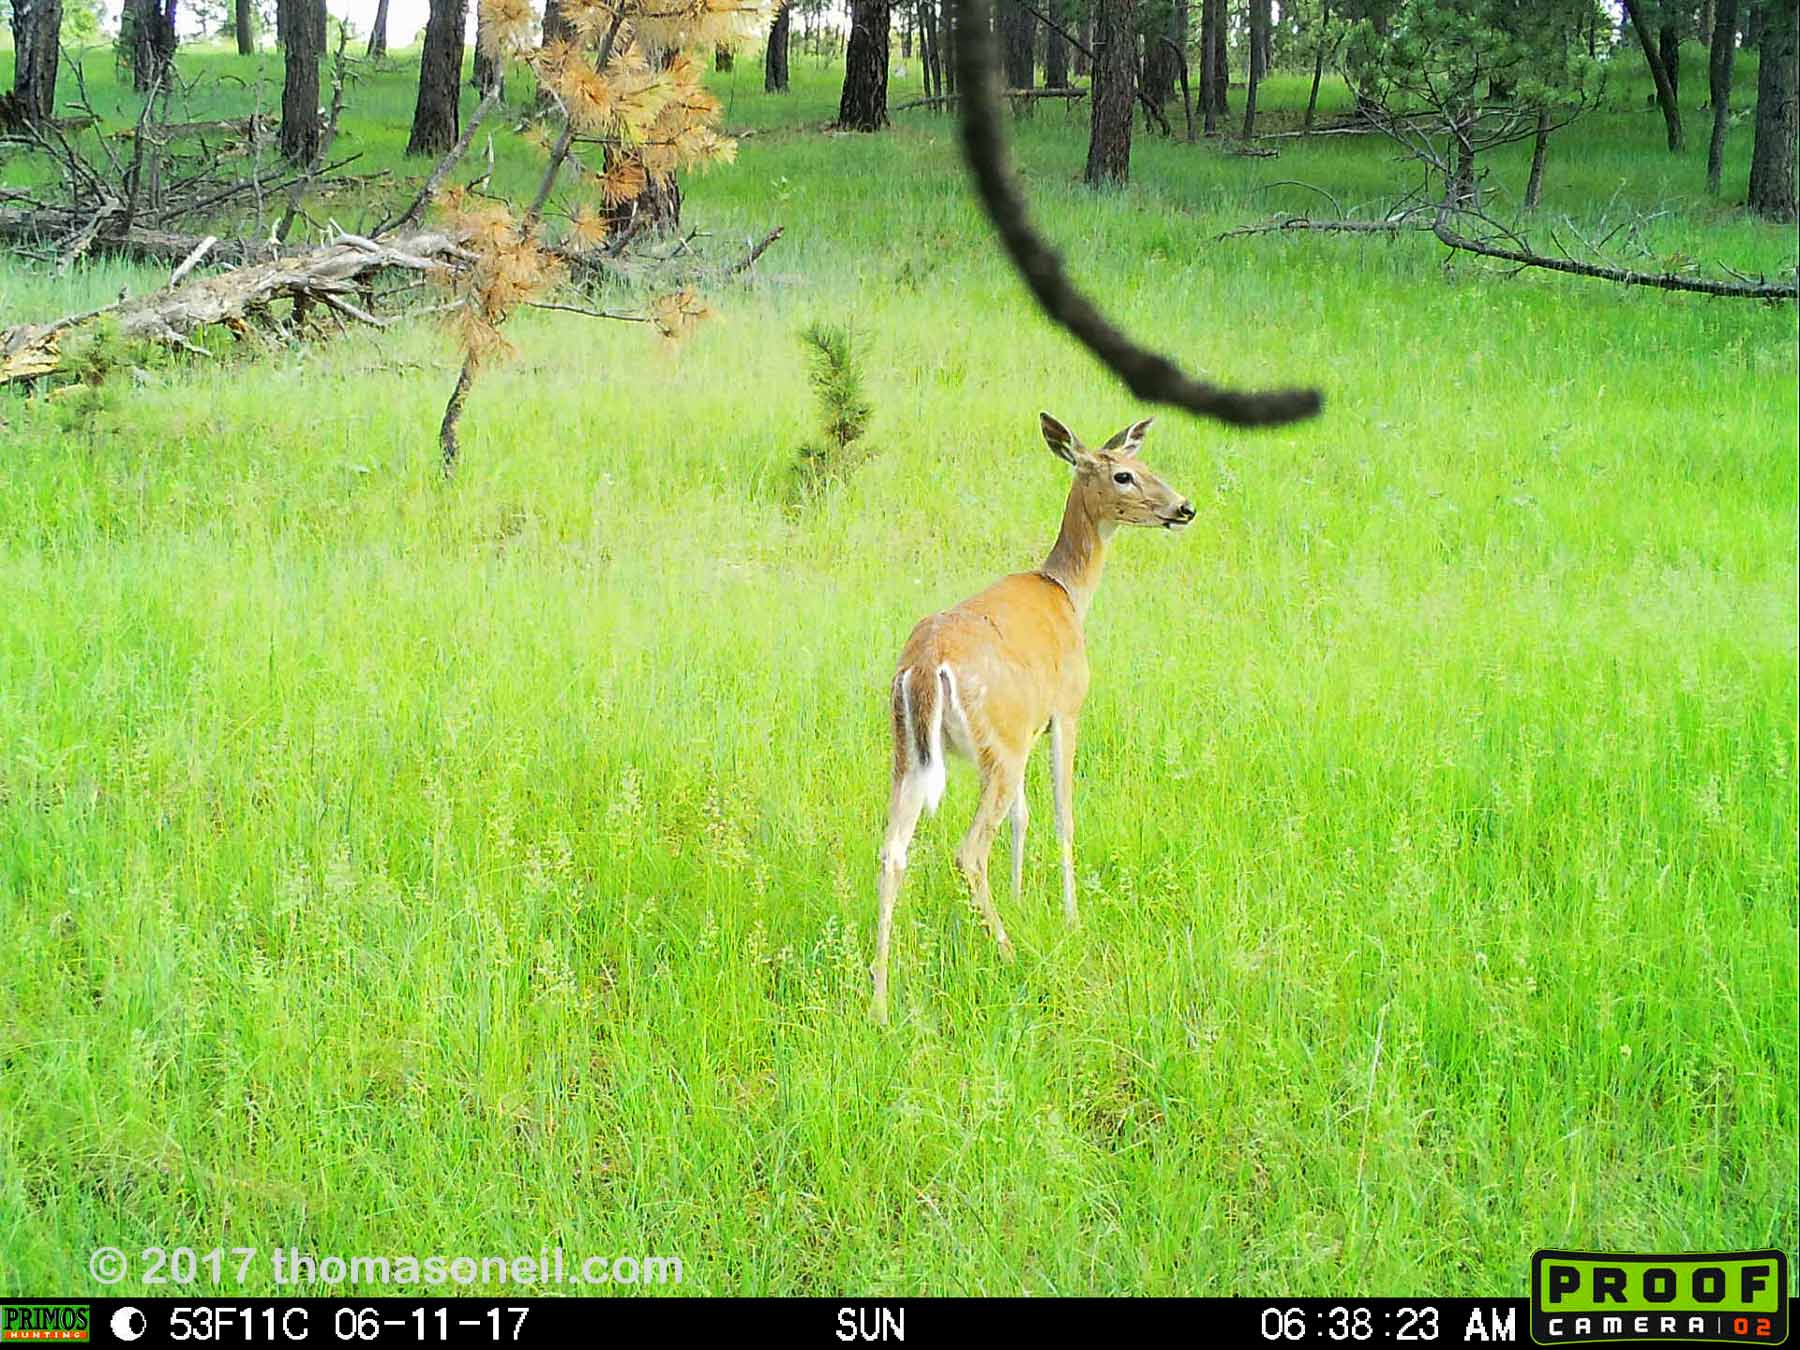 Deer, June 11, 2017.  This is probably the best image I can get from the Primos trailcam, but I'm going to try something else.